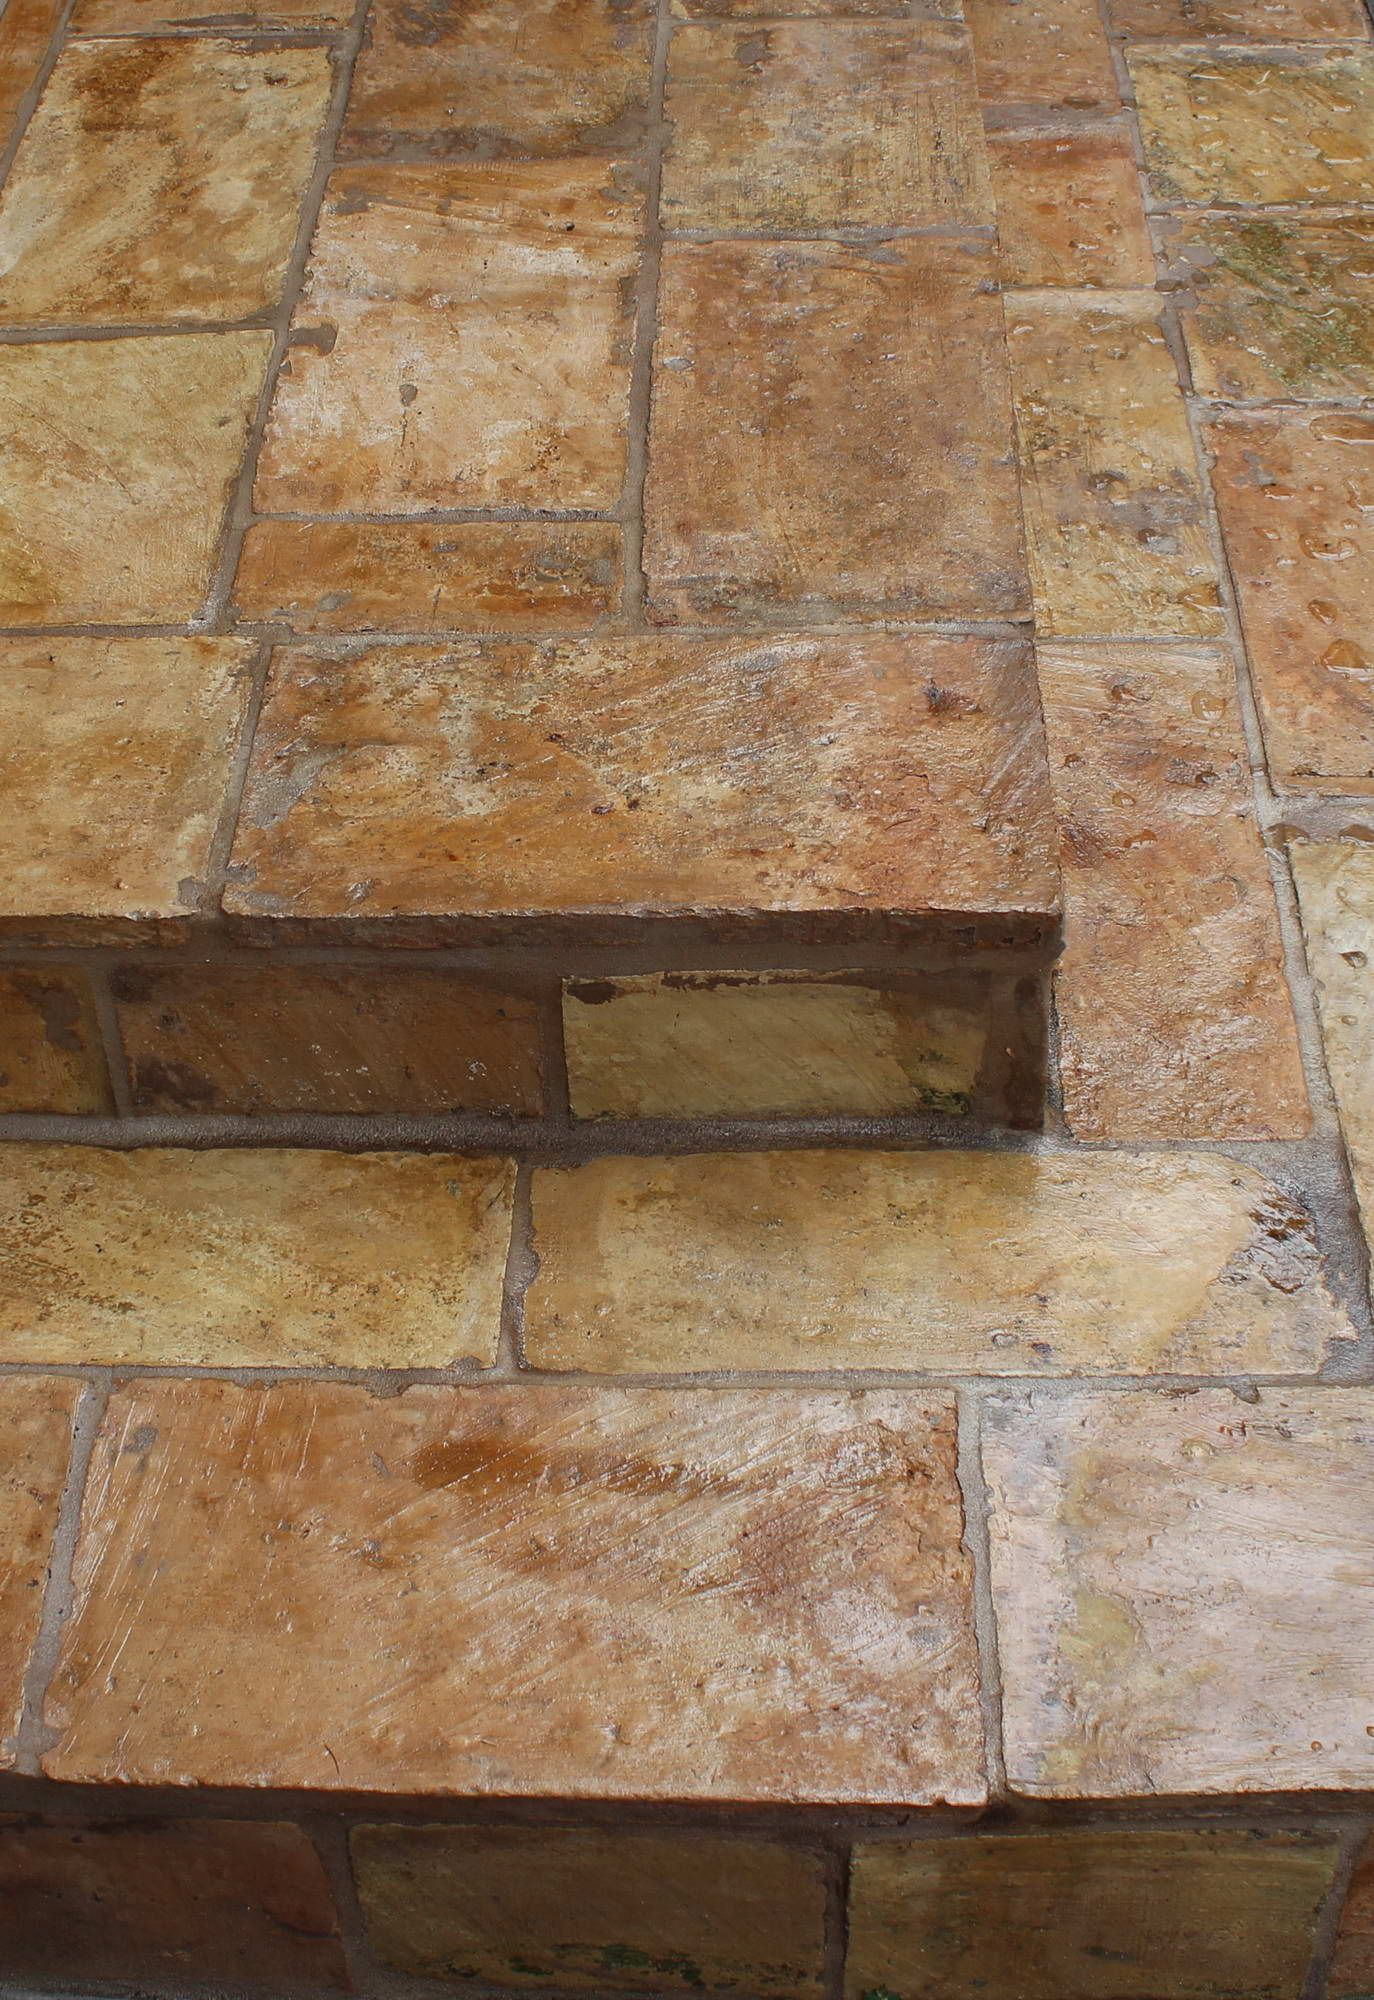 Traditionsl Glazed Terra Cotta Floor Tile With Unique Brown